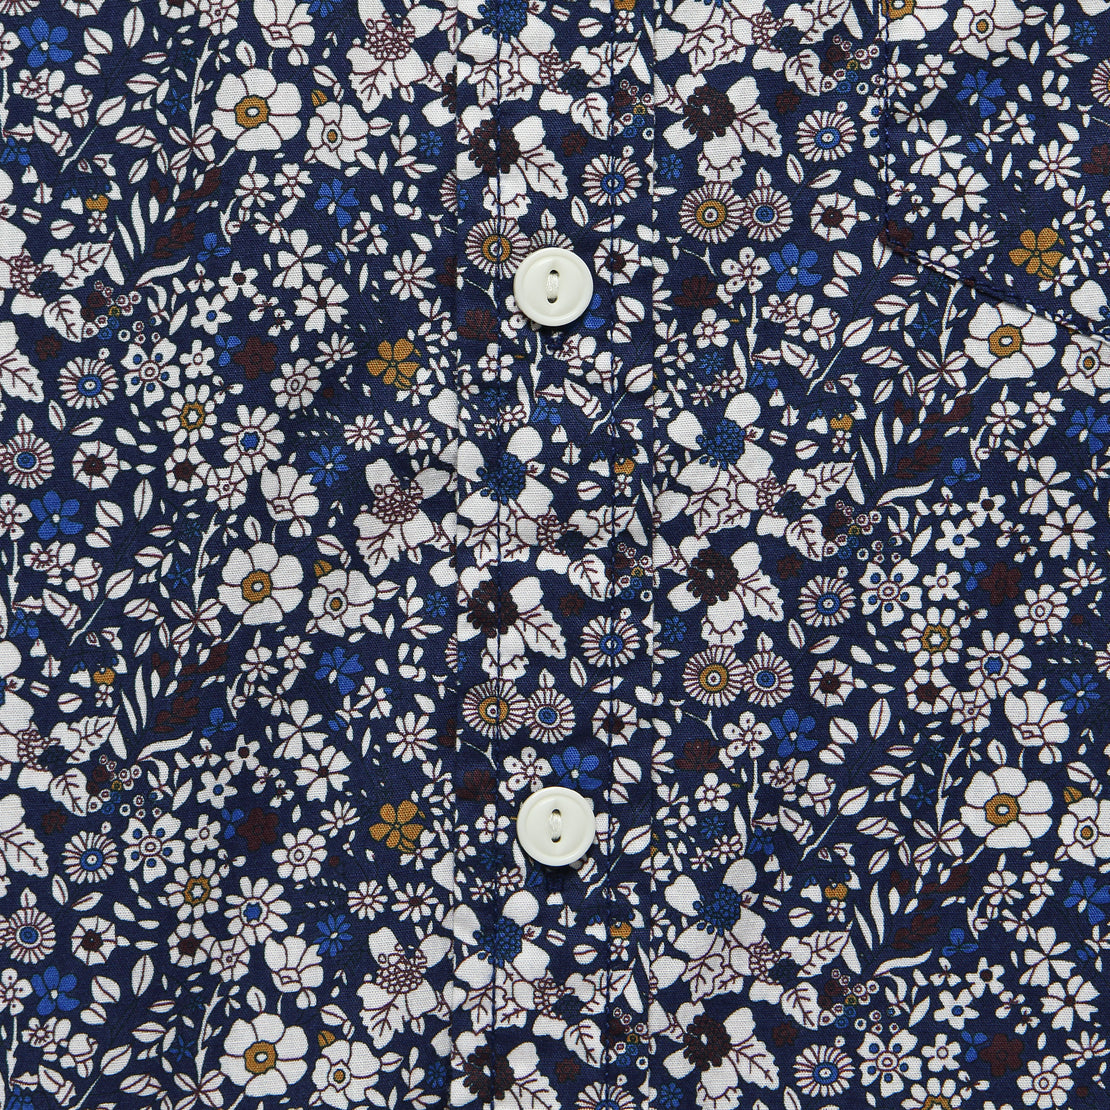 Multi-Color Floral Shirt - Navy